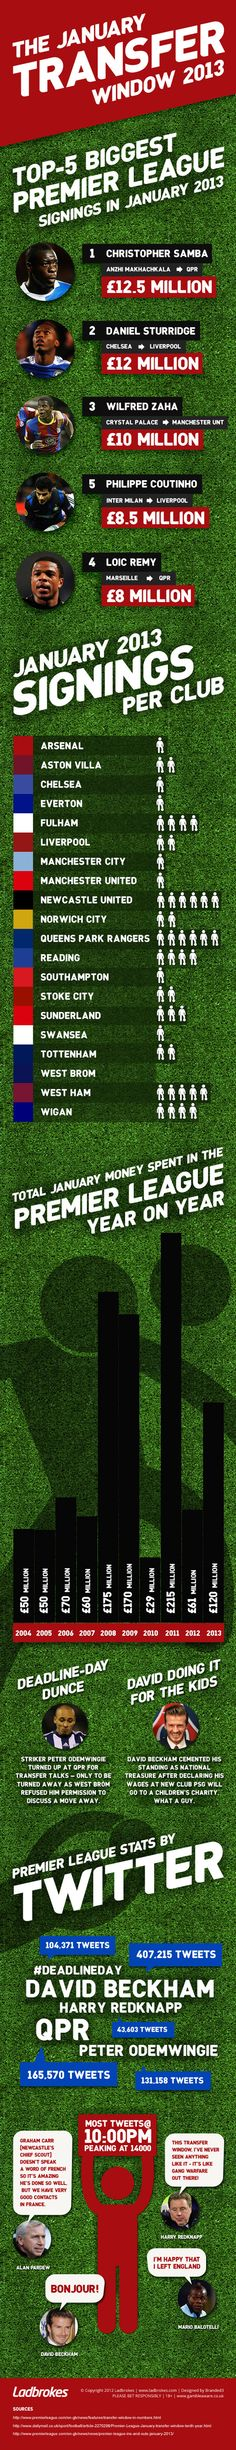 A neat round-up of the January transfer window #PremierLeague #football #soccer